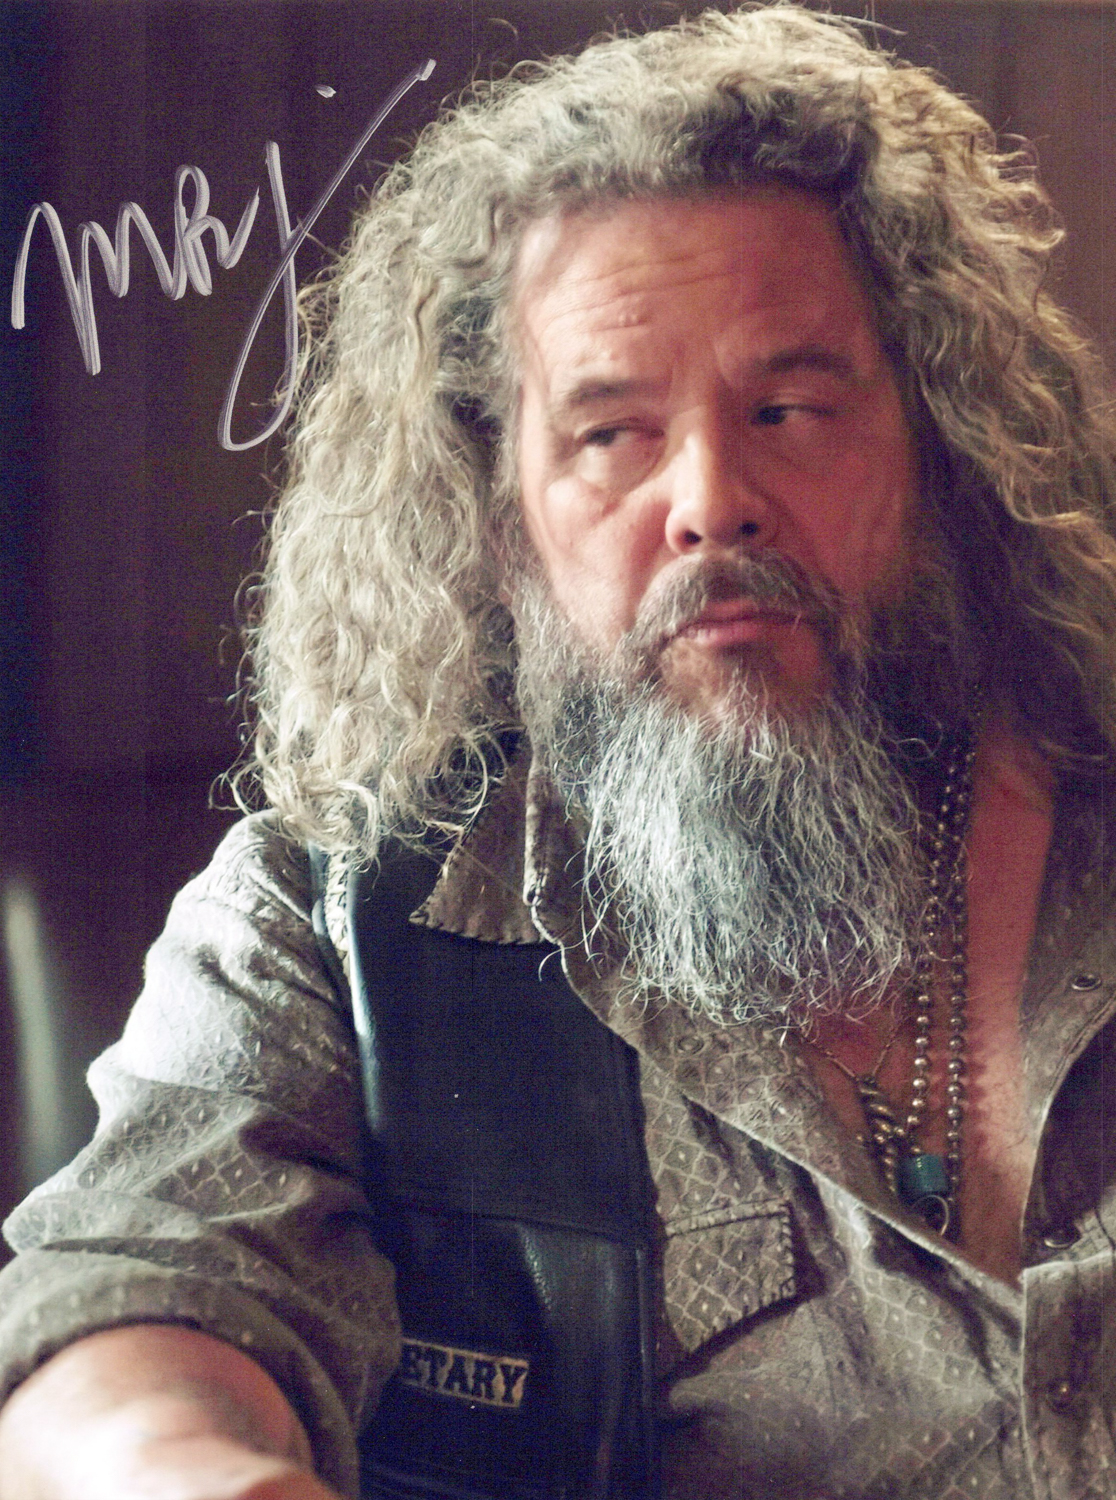 Mark Boone Jr. Original Autogramm auf Foto 20x25cm - Sons of Anarchy